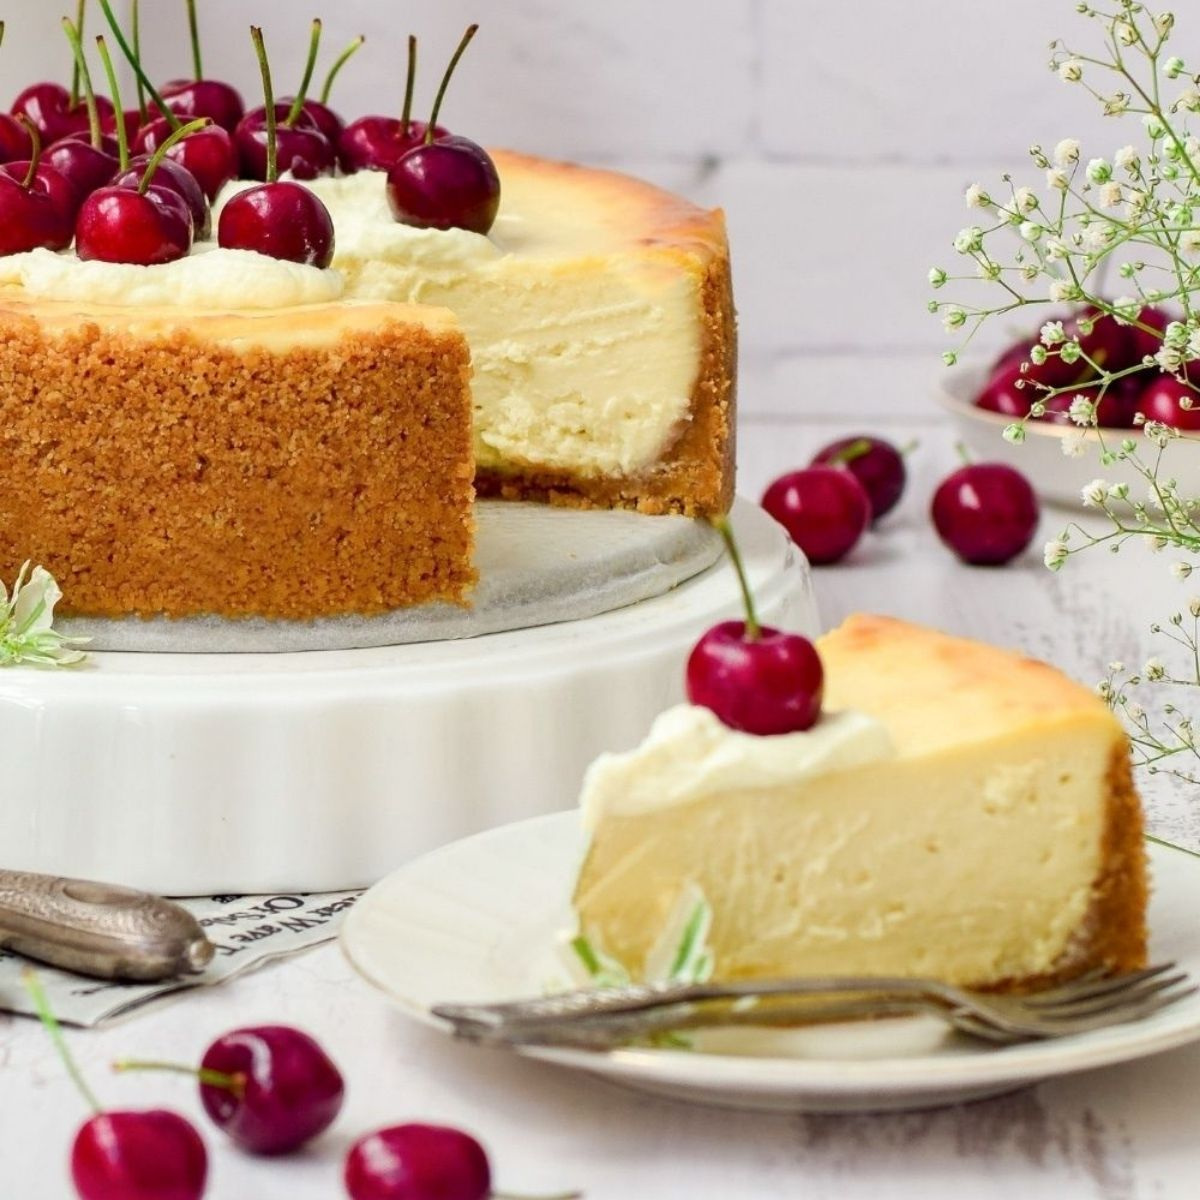 Delicious Baked White Chocolate Cheesecake